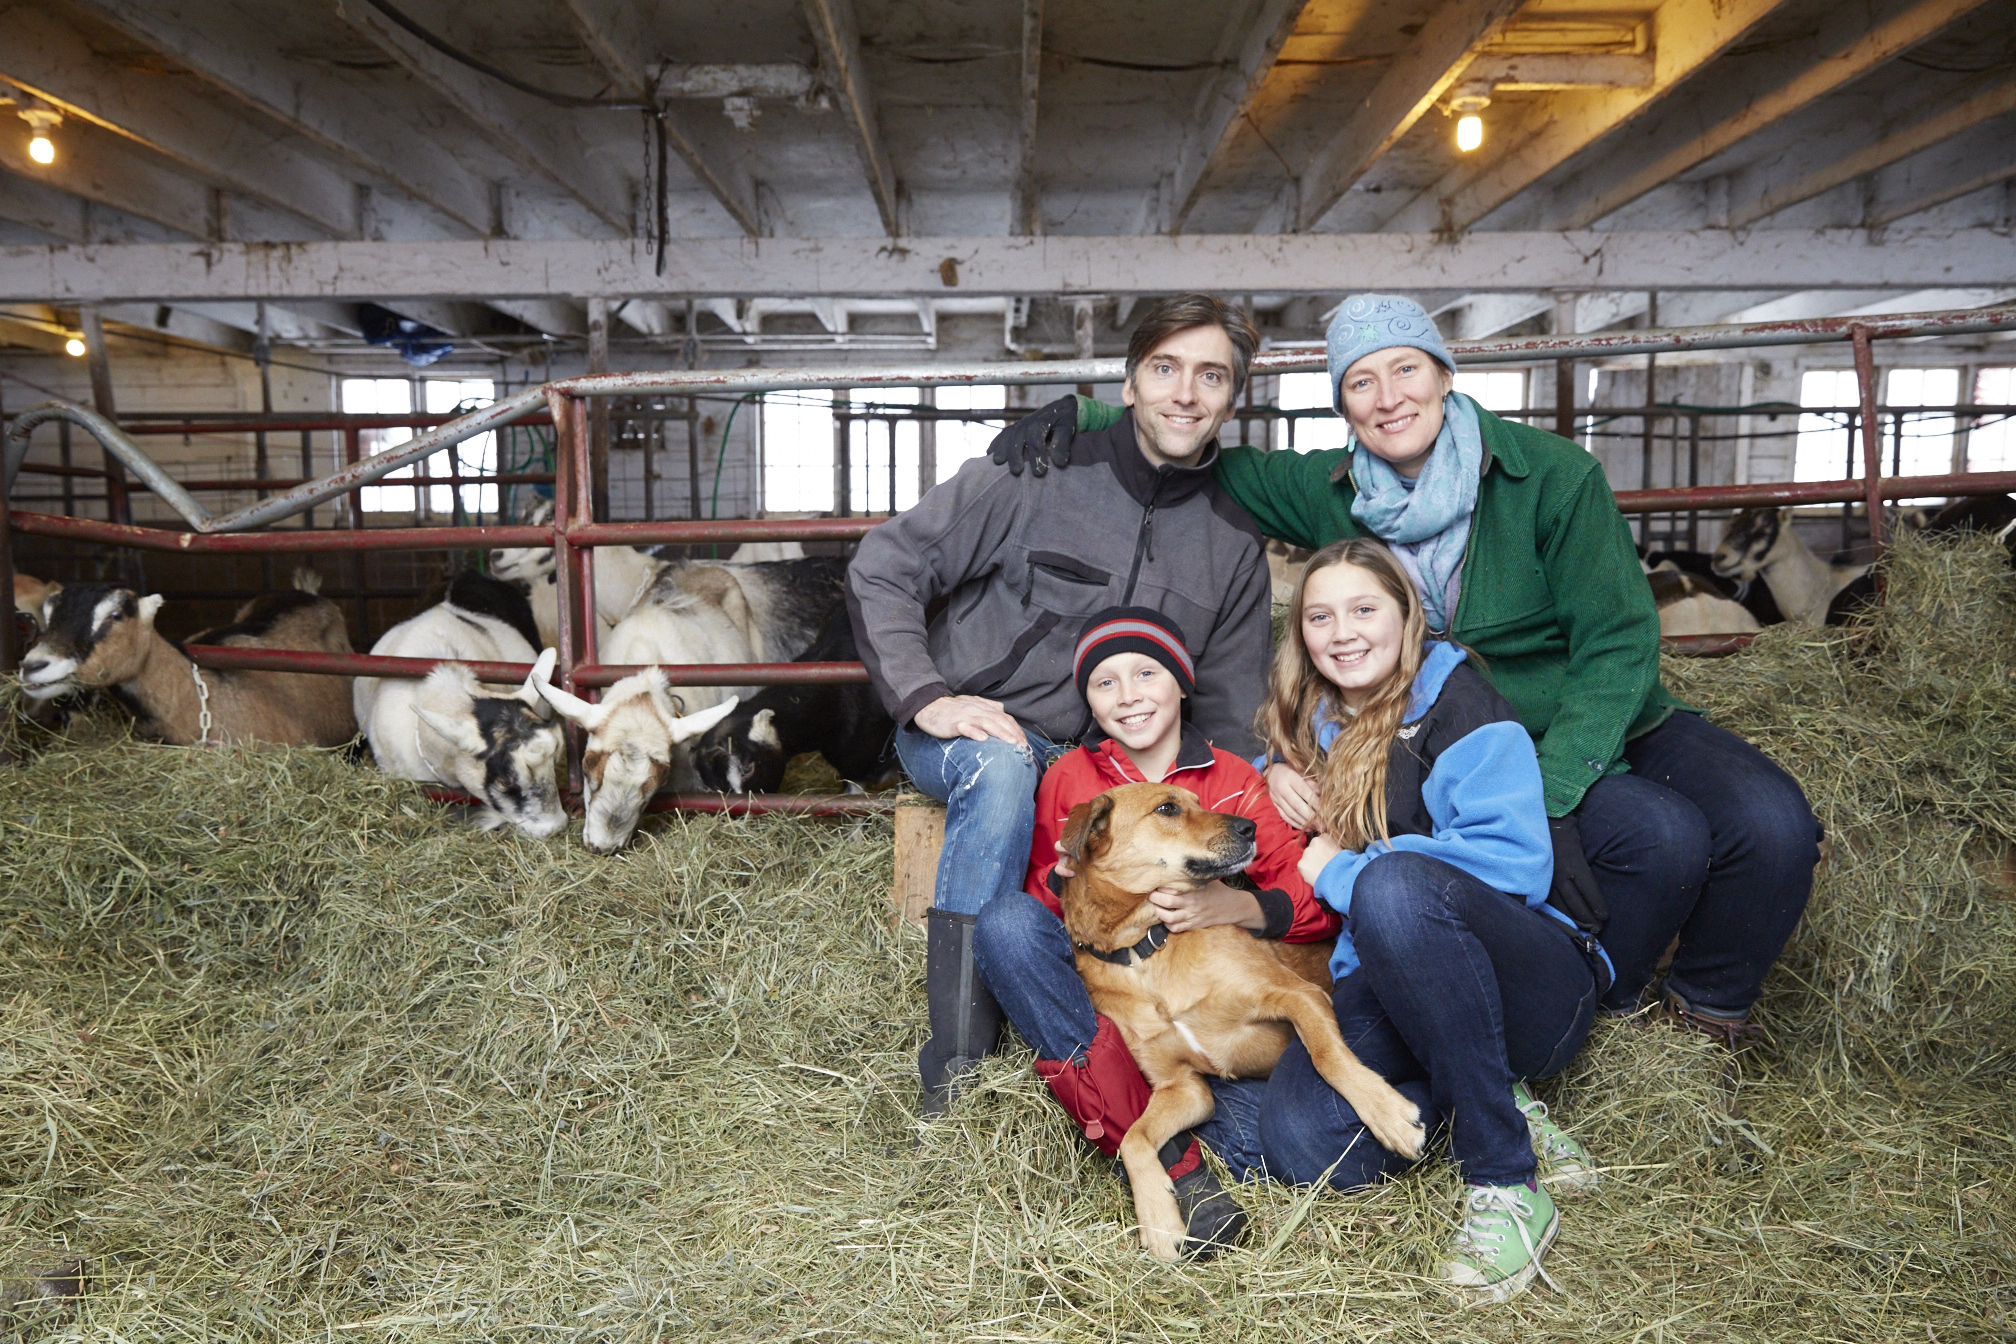 Modern Life: Working and Living on a Dairy Farm